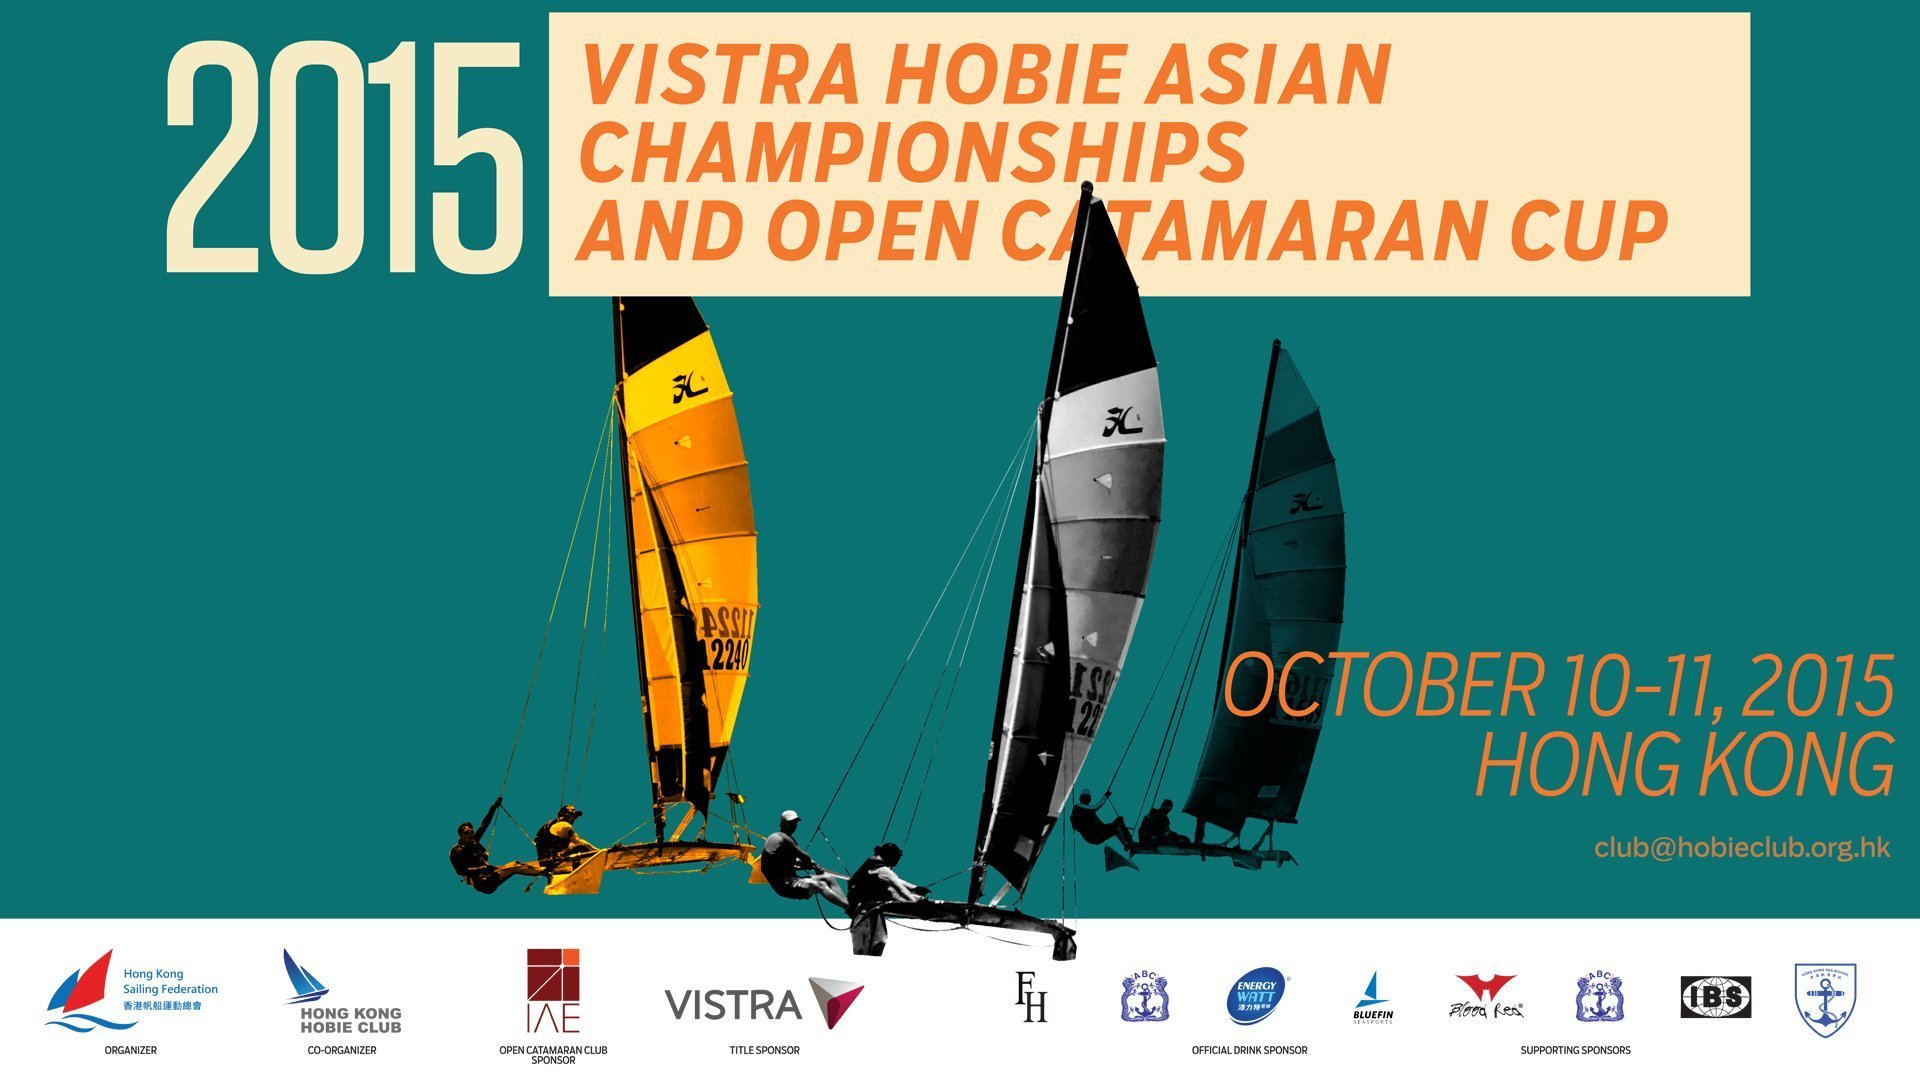 Thai Sailing Team Retain Iron Grip on Vistra 2015 Hobie Asian Championships